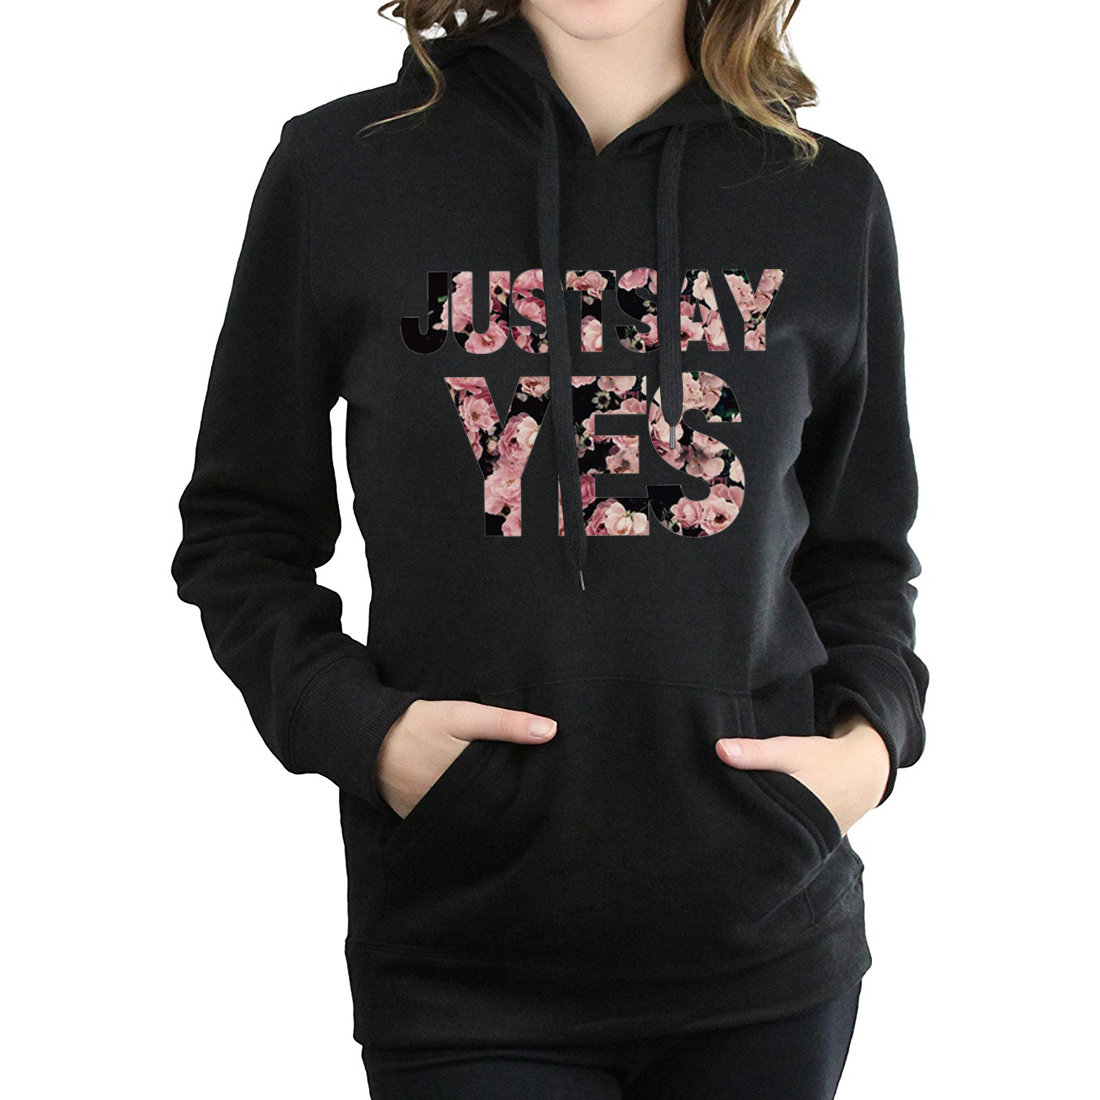 new women fleece tracksuits harajuku long sleeve hip-hop sweatshirts just say yes letters print hoodies for lady 2019 pullovers